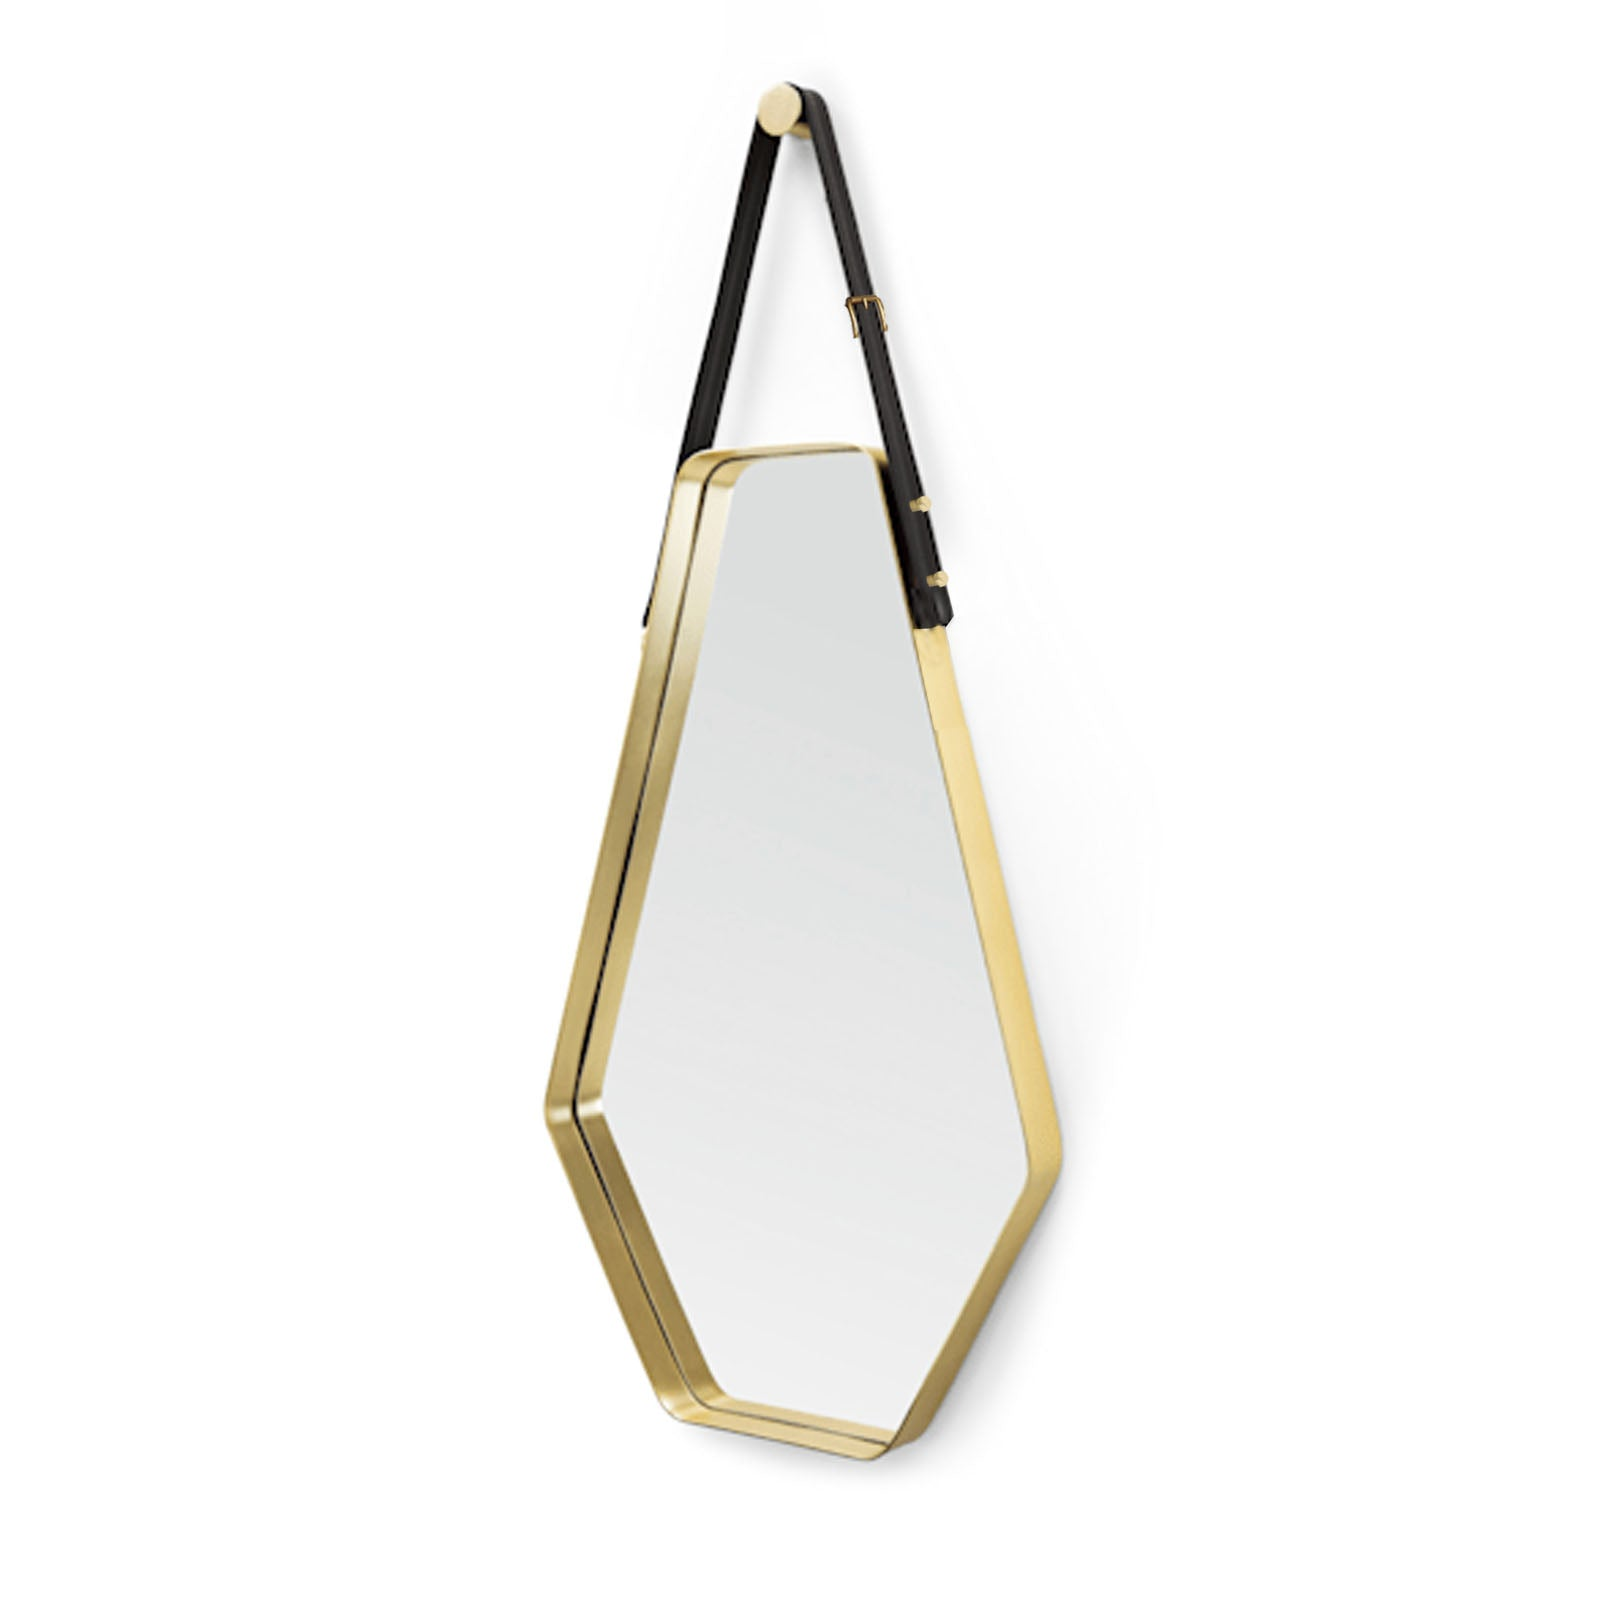 Mid century French Style Mirror  OA-6044 -  مرآة على الطراز الفرنسي ميد سينشري - Shop Online Furniture and Home Decor Store in Dubai, UAE at ebarza